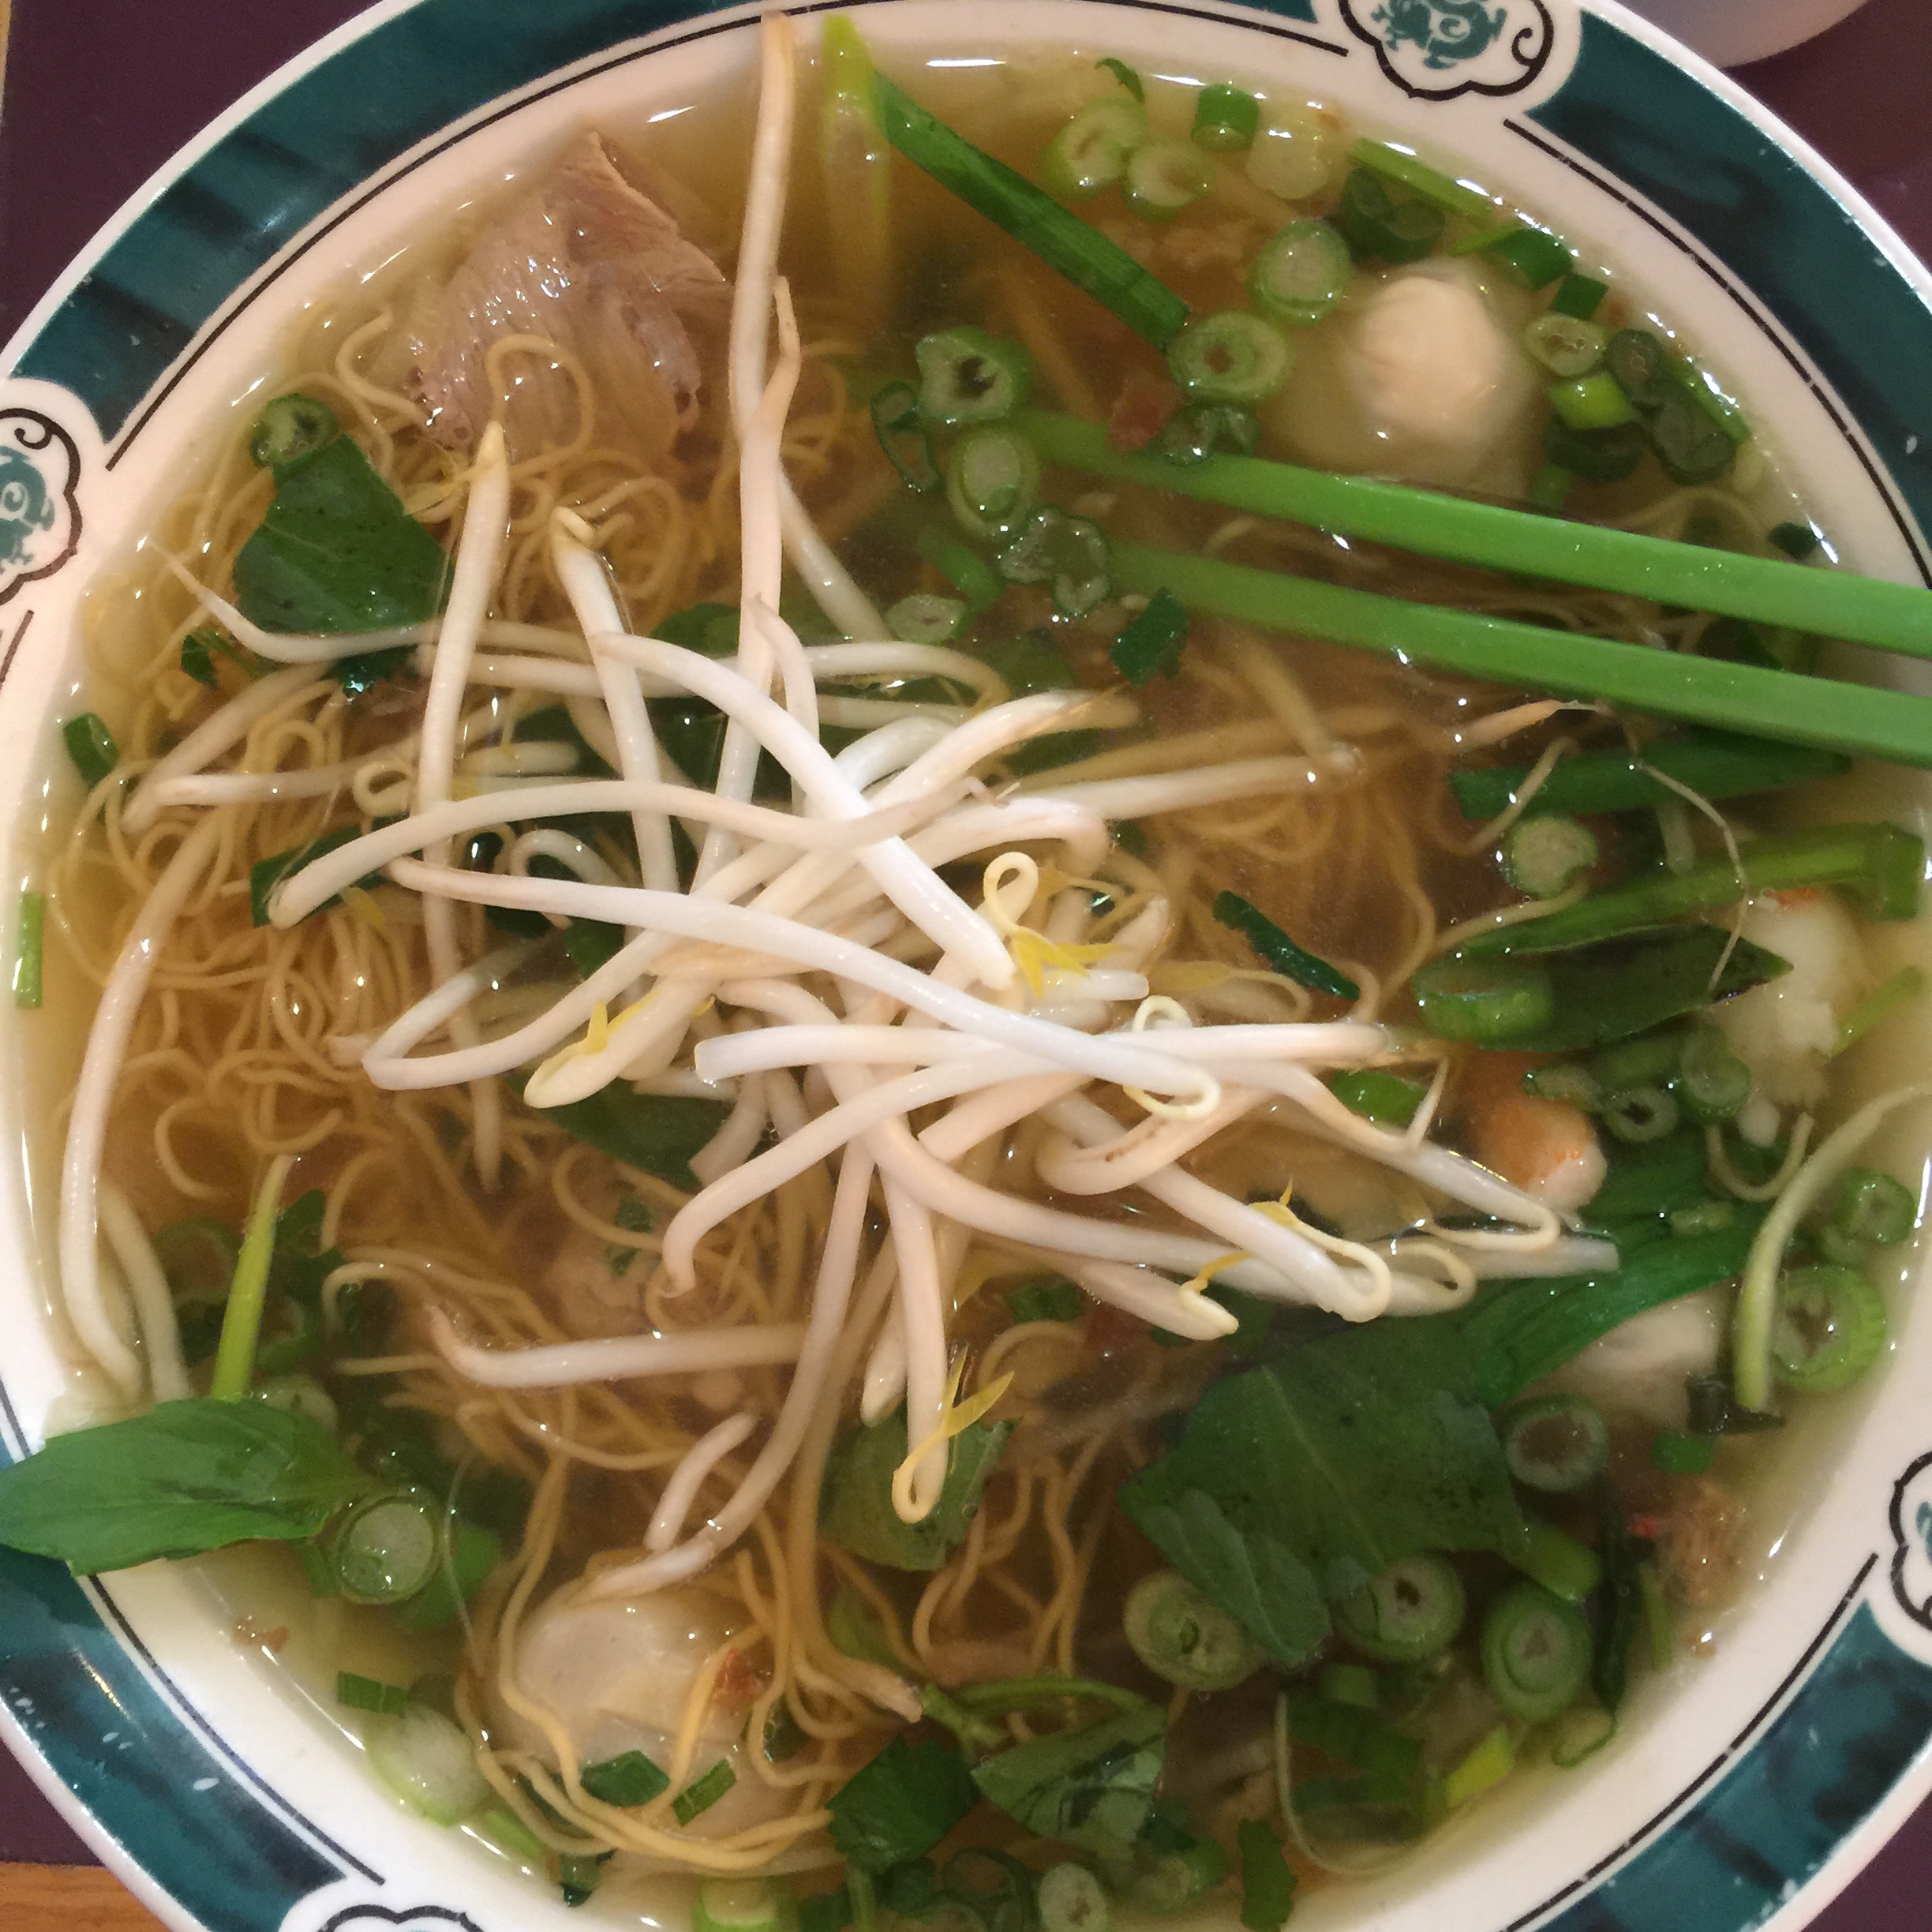 My egg noodle & wonton soup from Pho Thanh this past weekend